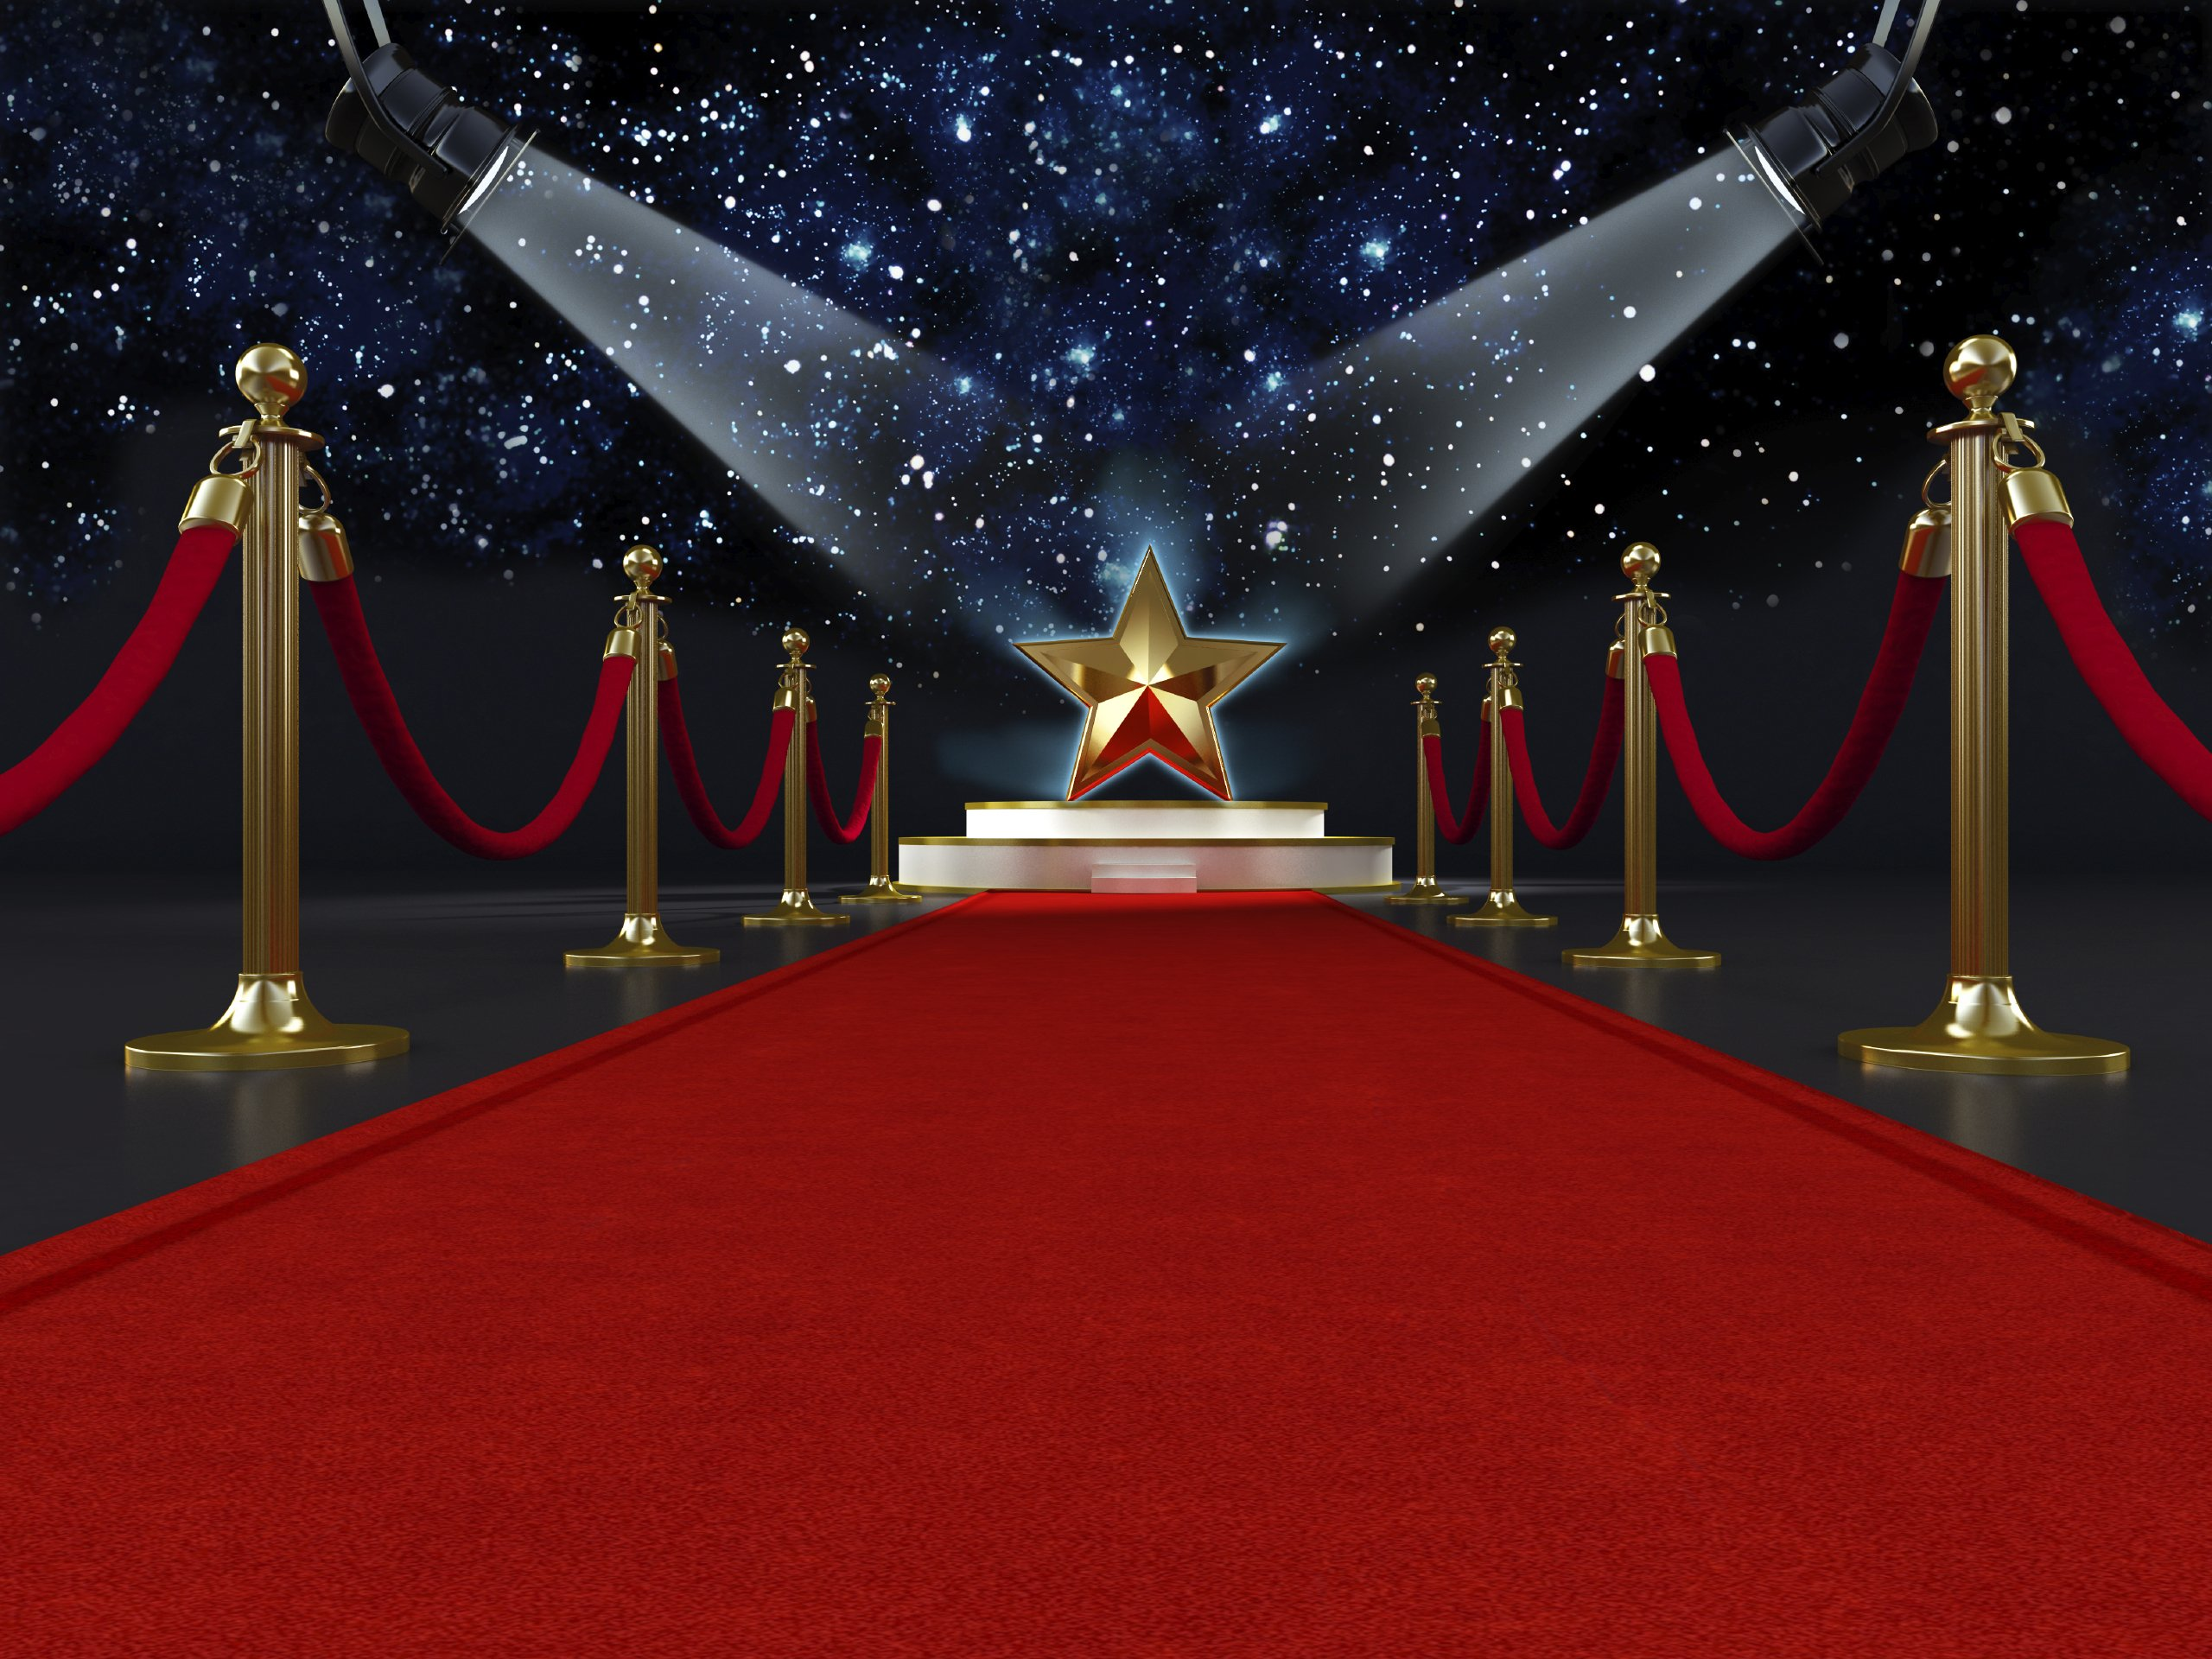 Backdrop Hollywood  3m x 2.3m $60 Incl frame & gst